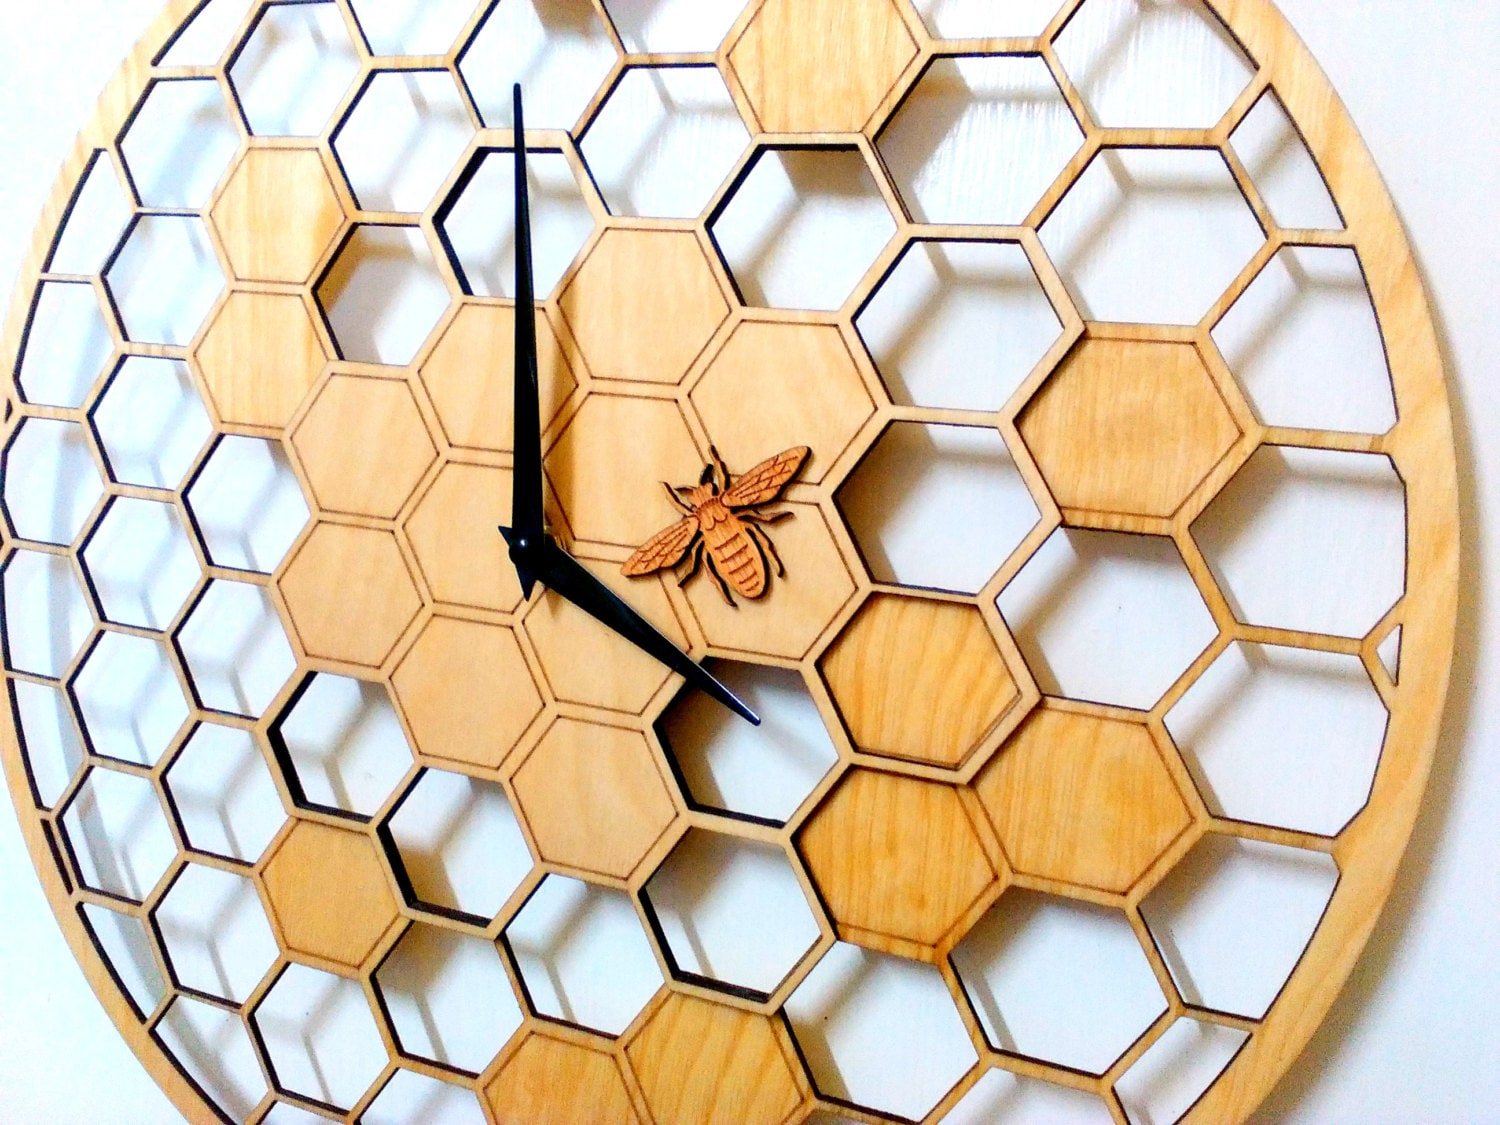 Bee cells laser cut wall clock 157 diameter large zoom amipublicfo Choice Image